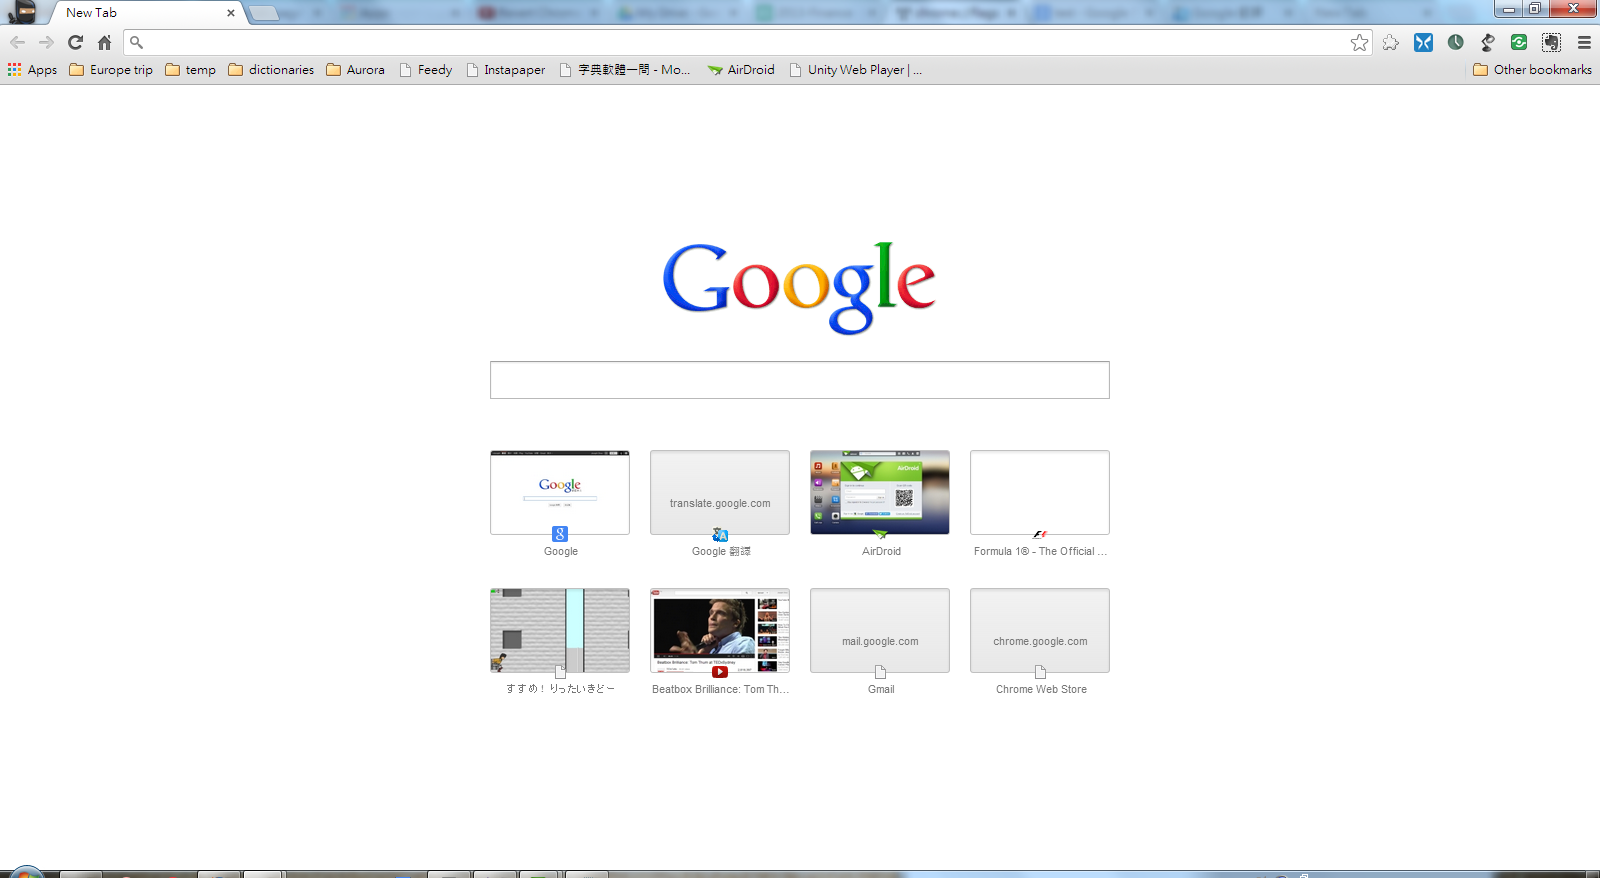 English@Life and Story: Go back to the old new tab page of Google Chrome